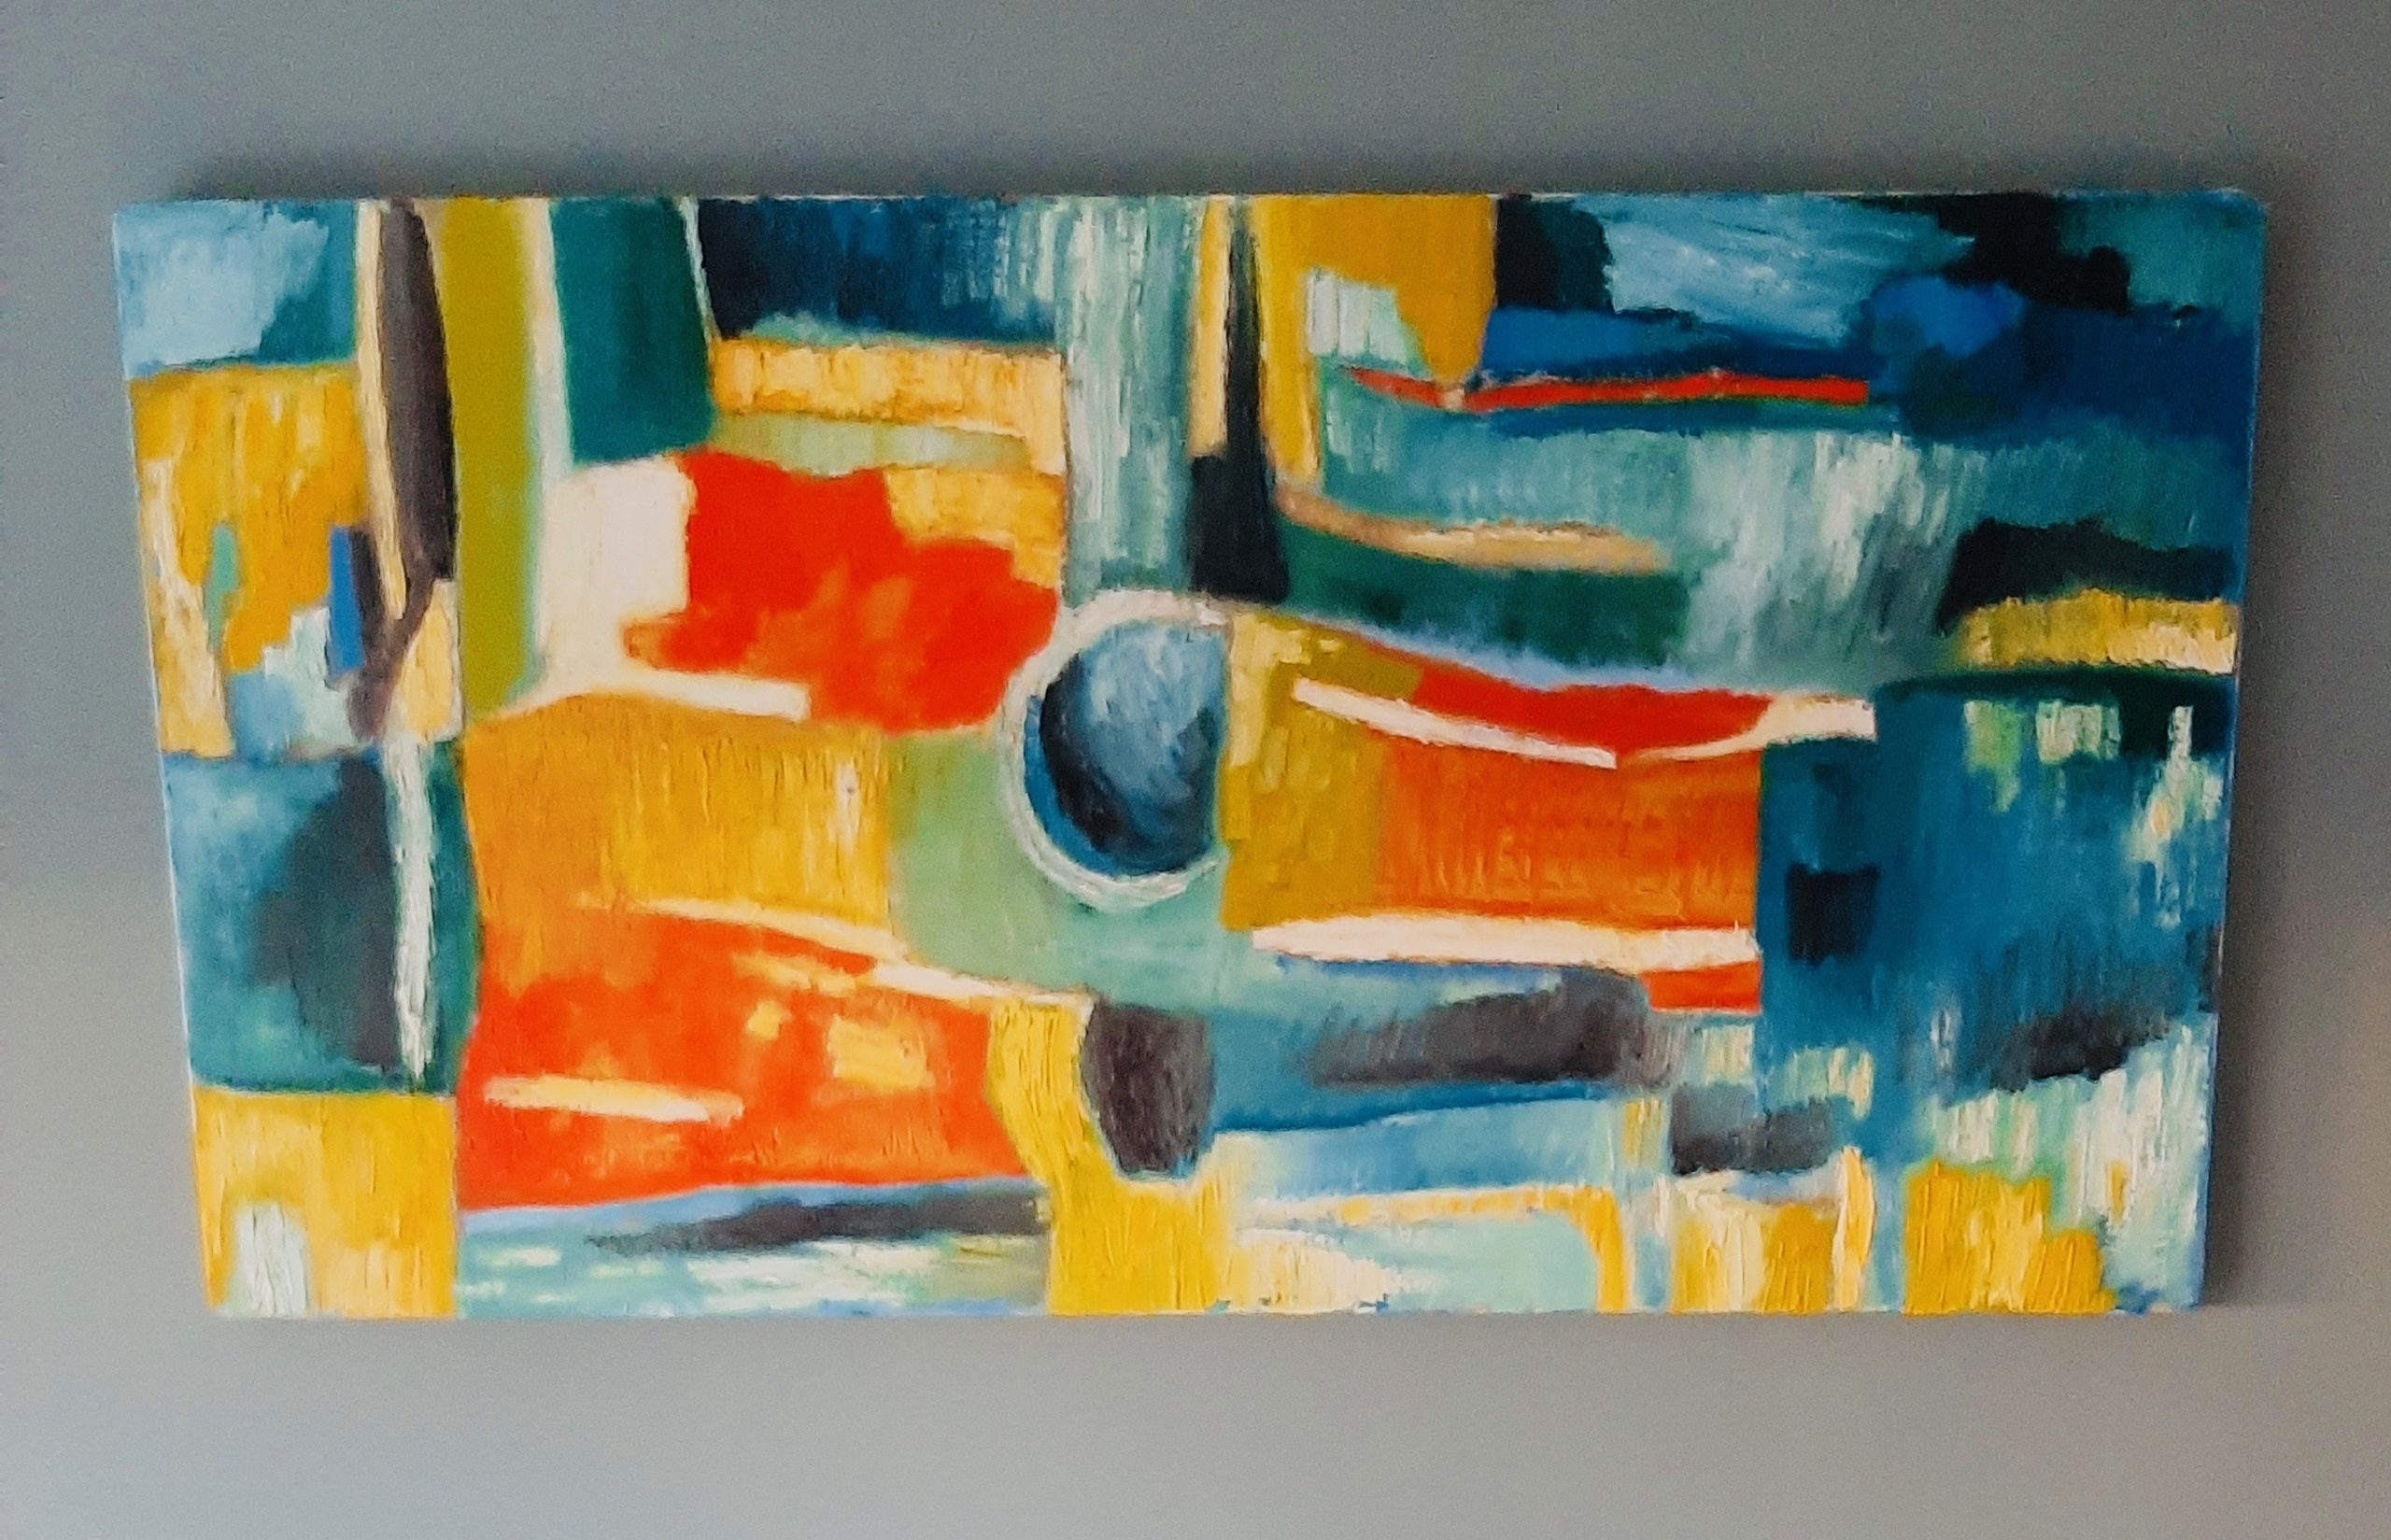 An abstract painting with cuboid-ish blocks of orange, yellow, and blue.